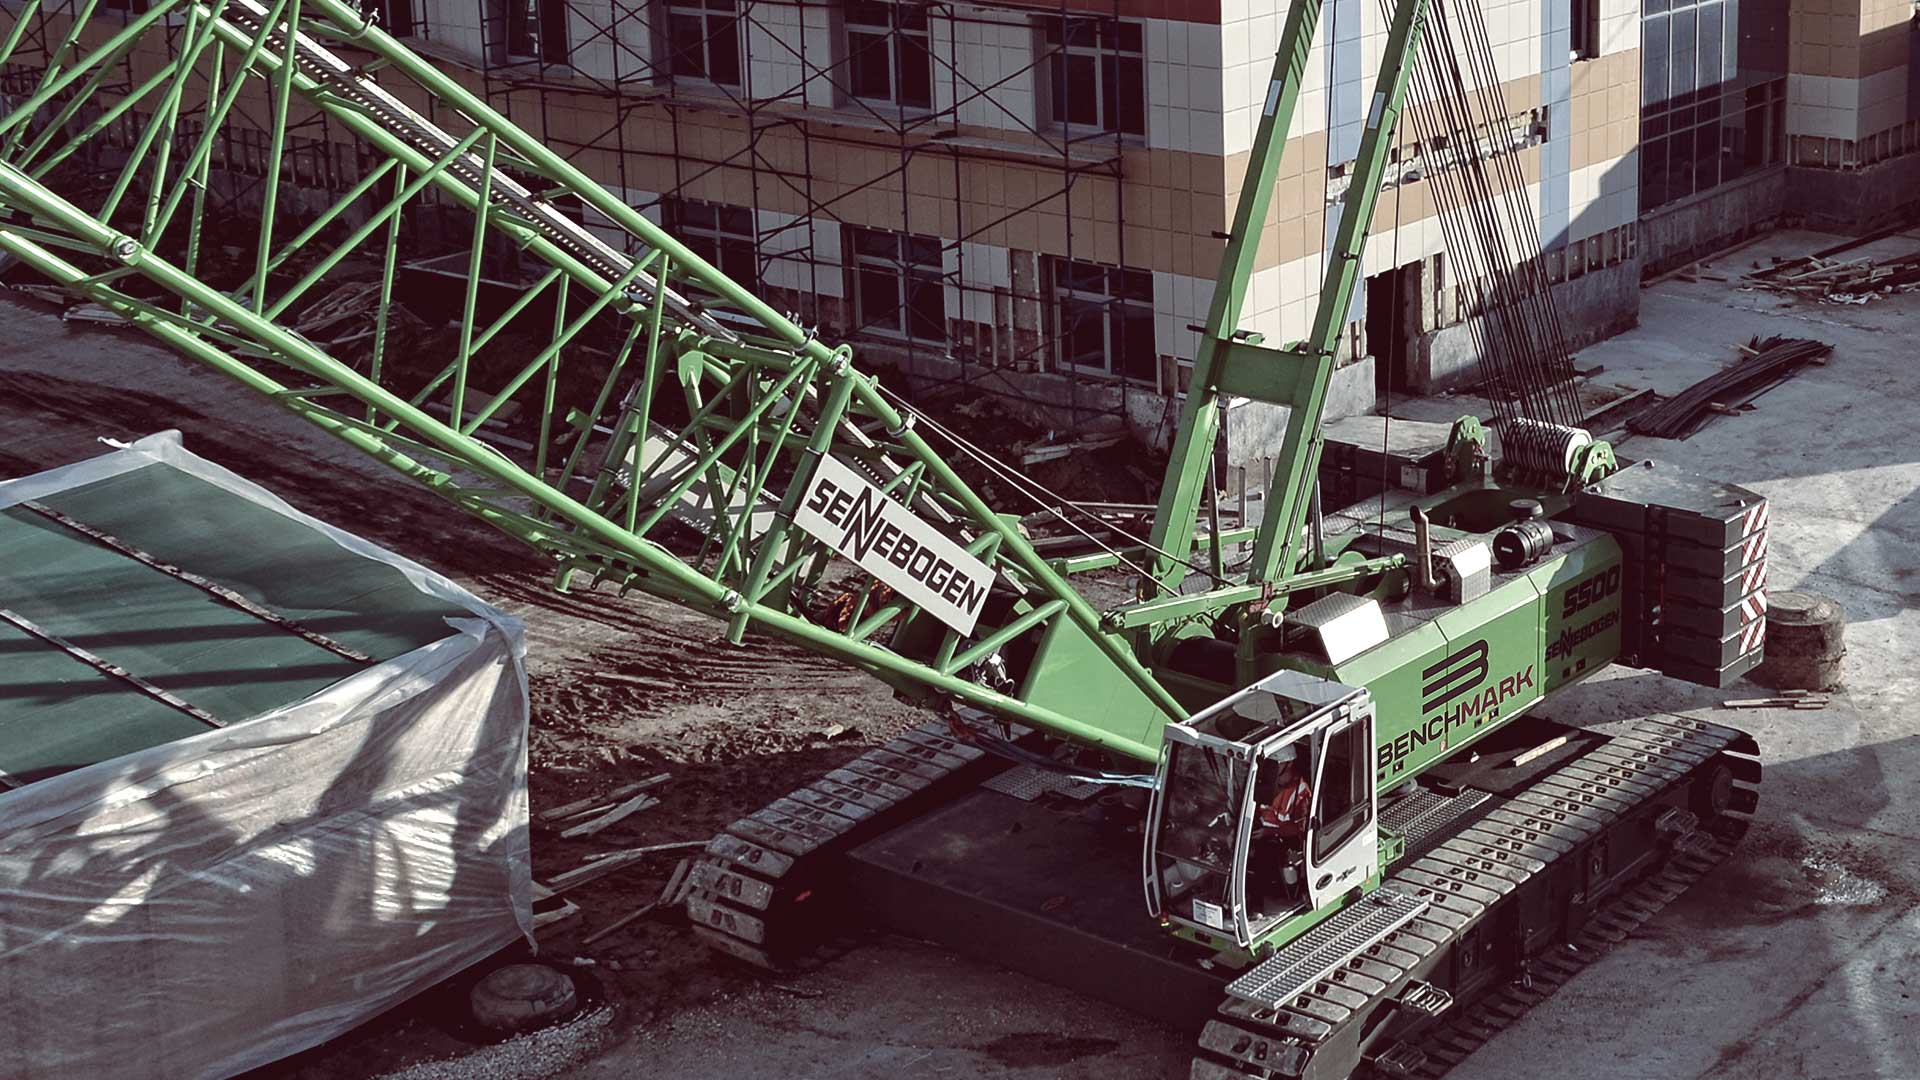 Terrain and Crawler Cranes